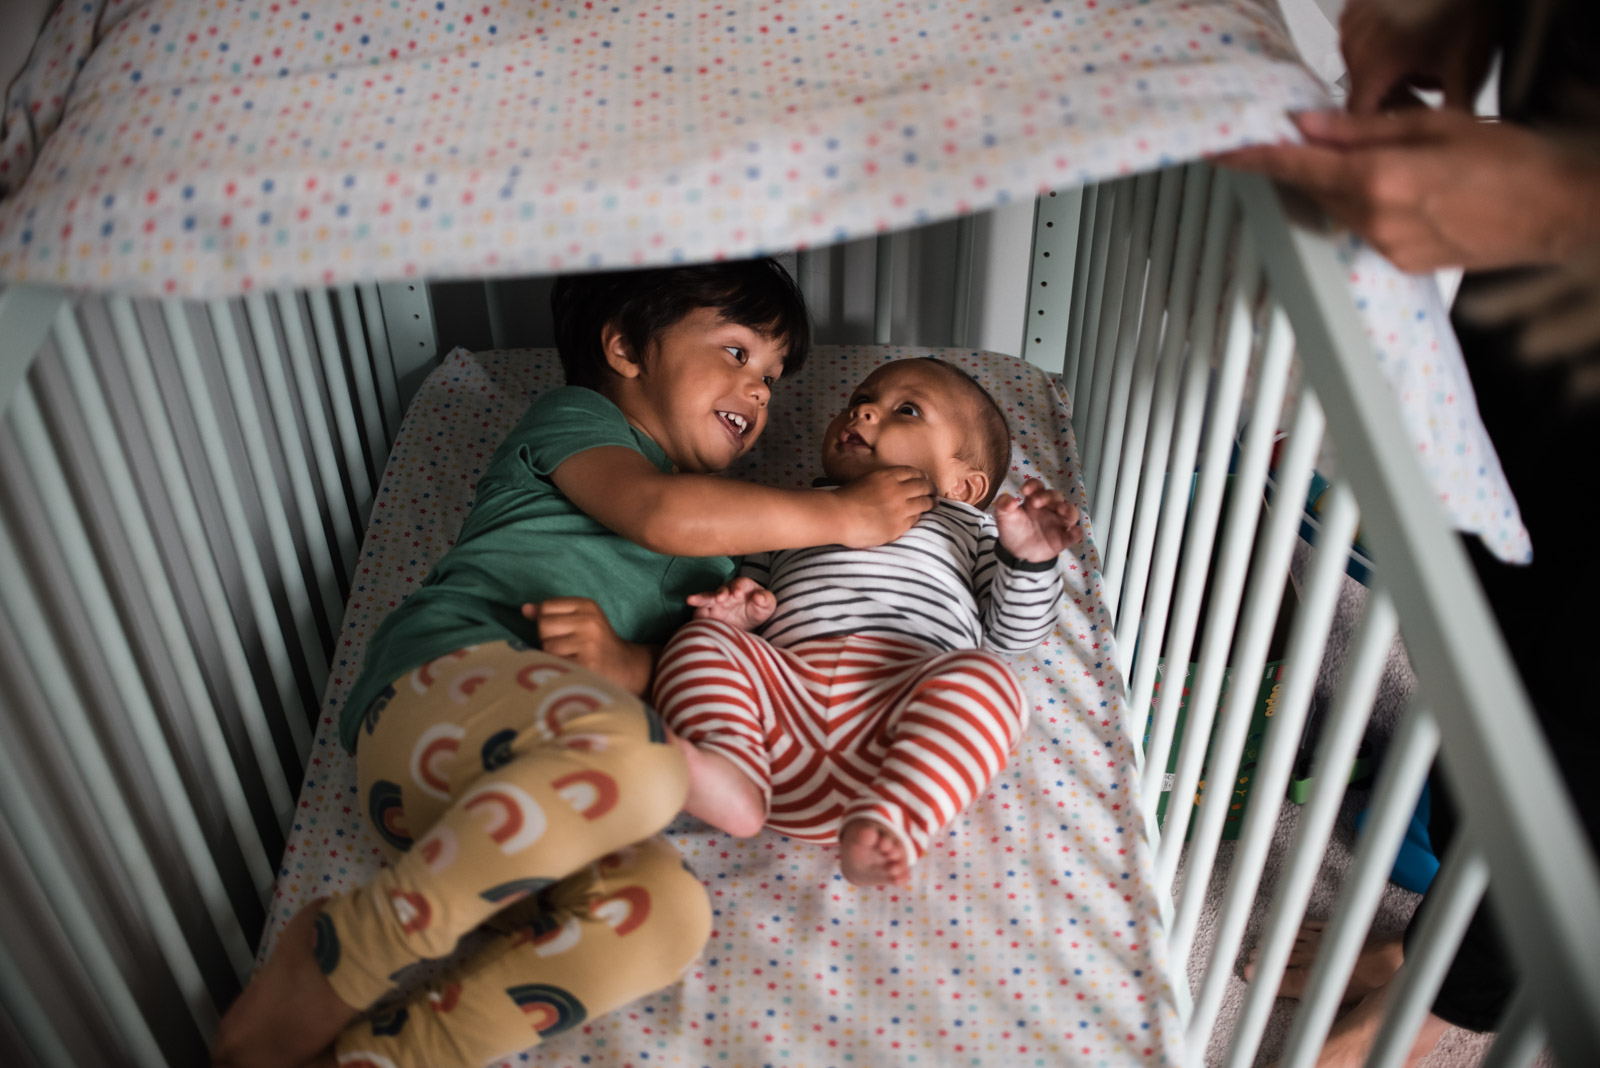 London family photographer The Ginger Collective, children in the cot